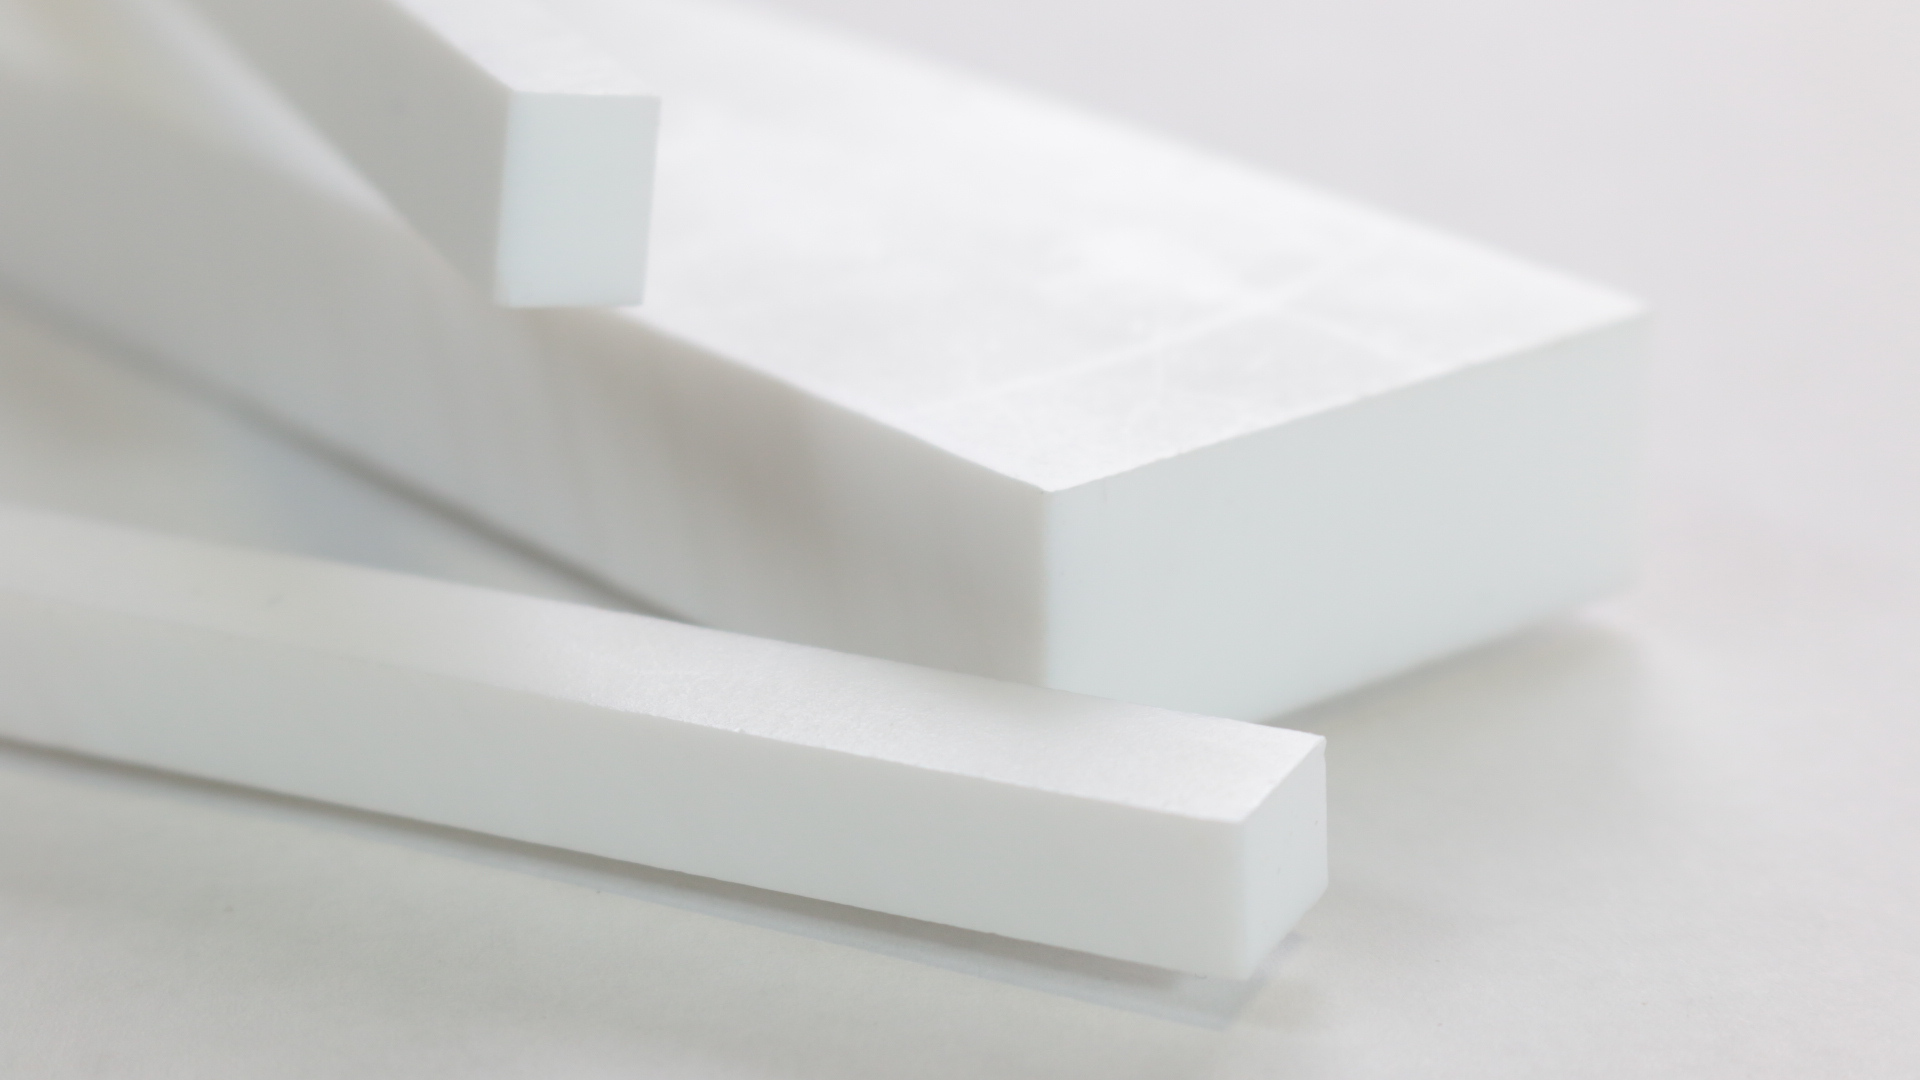 Virgin Ptfe Polytetrafluoroethylene Rectangular Bars